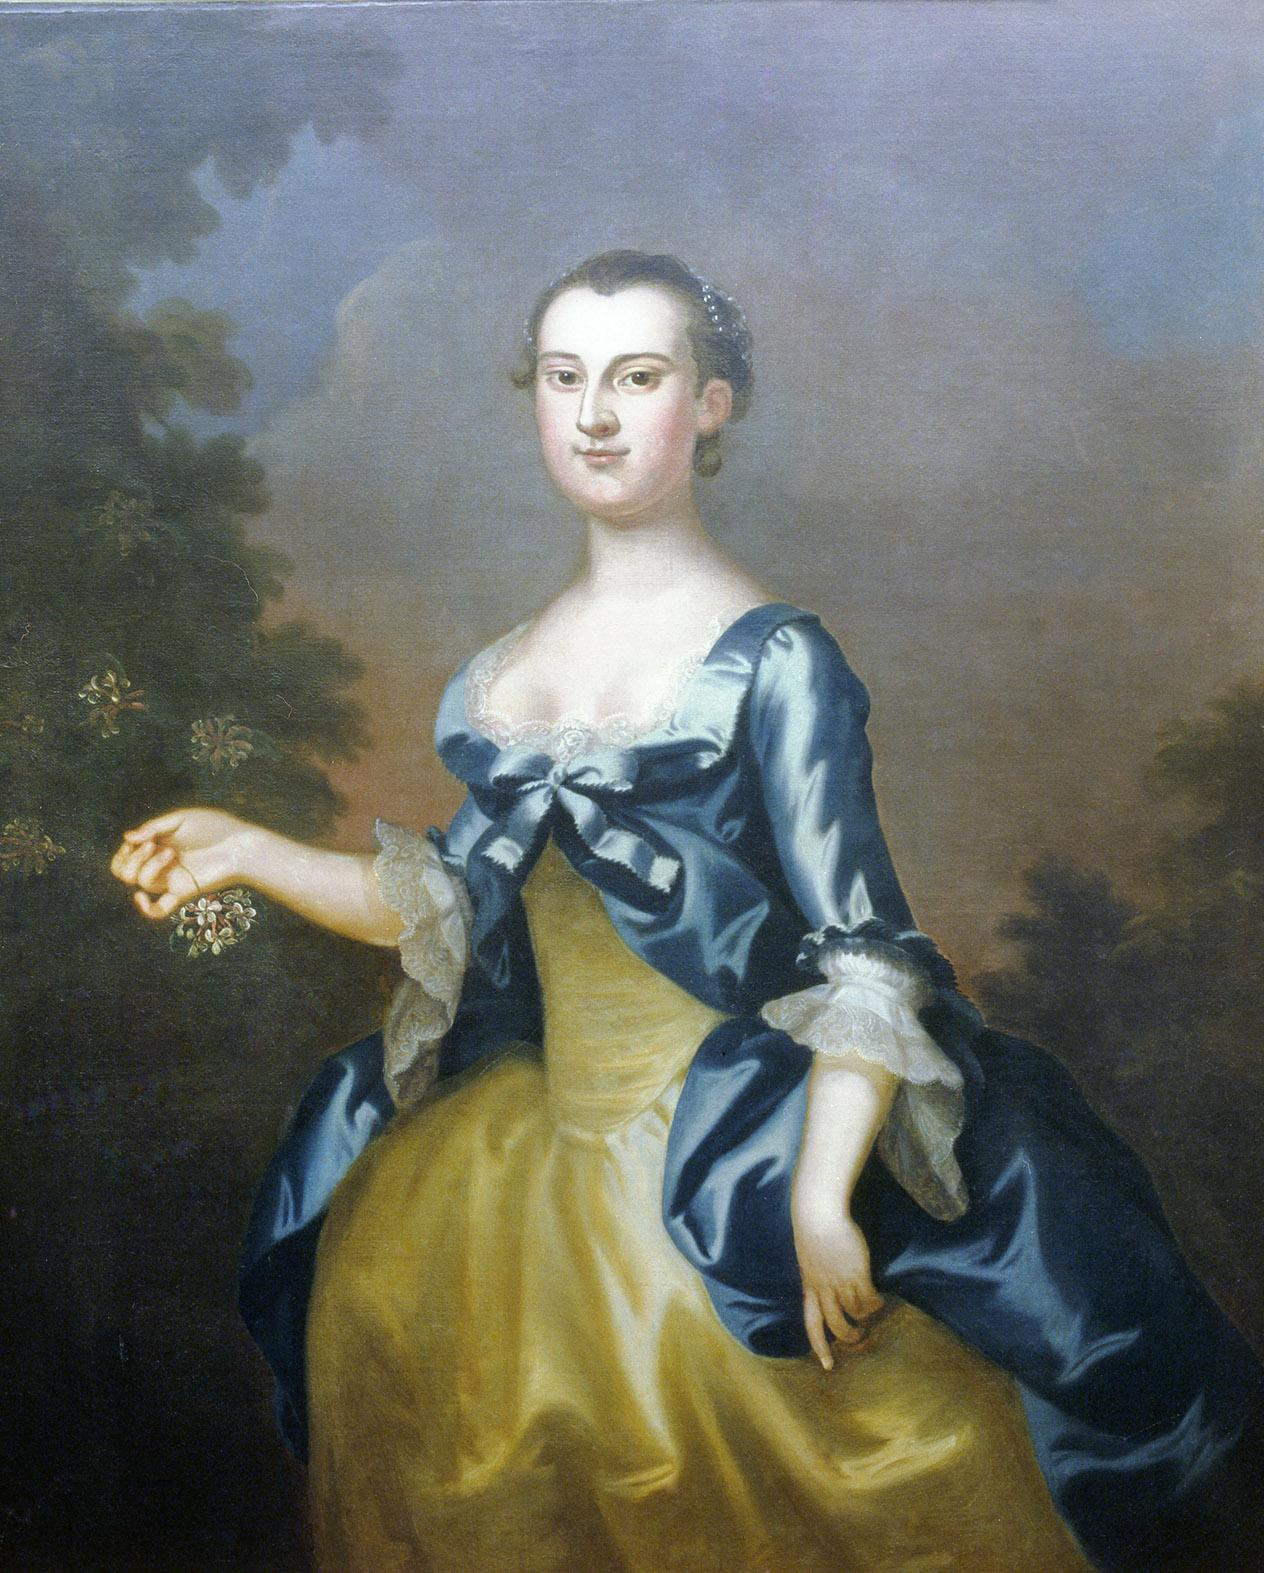 Portrait of Martha Dandridge Custis, John Wollaston, oil on canvas, 1757. Washington-Custis-Lee Collection, Washington and Lee University, Lexington, VA. [U1918.1.1]